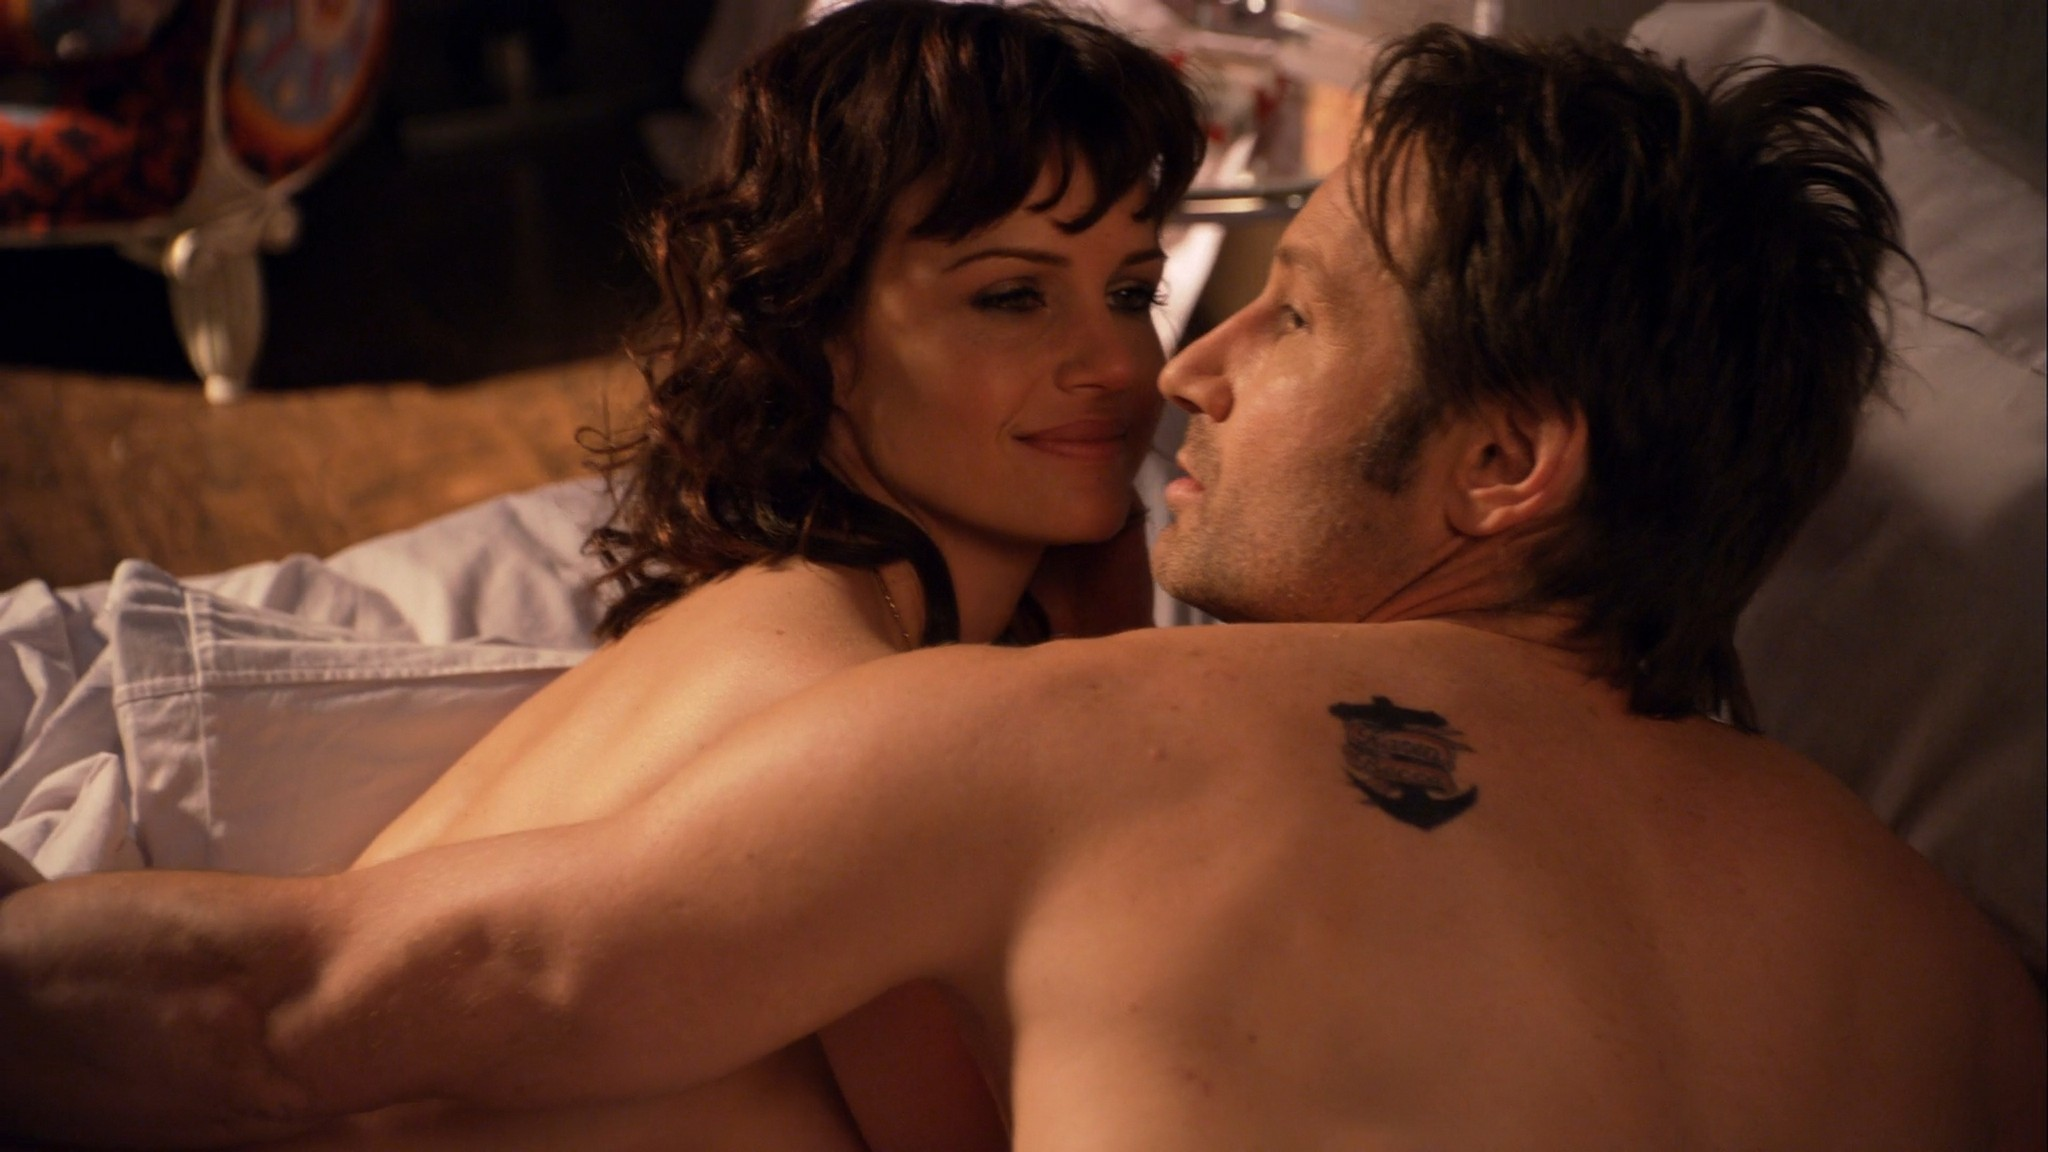 Carla Gugino hot lingerie Californication (2011) s4e7 HD 1080p (7)